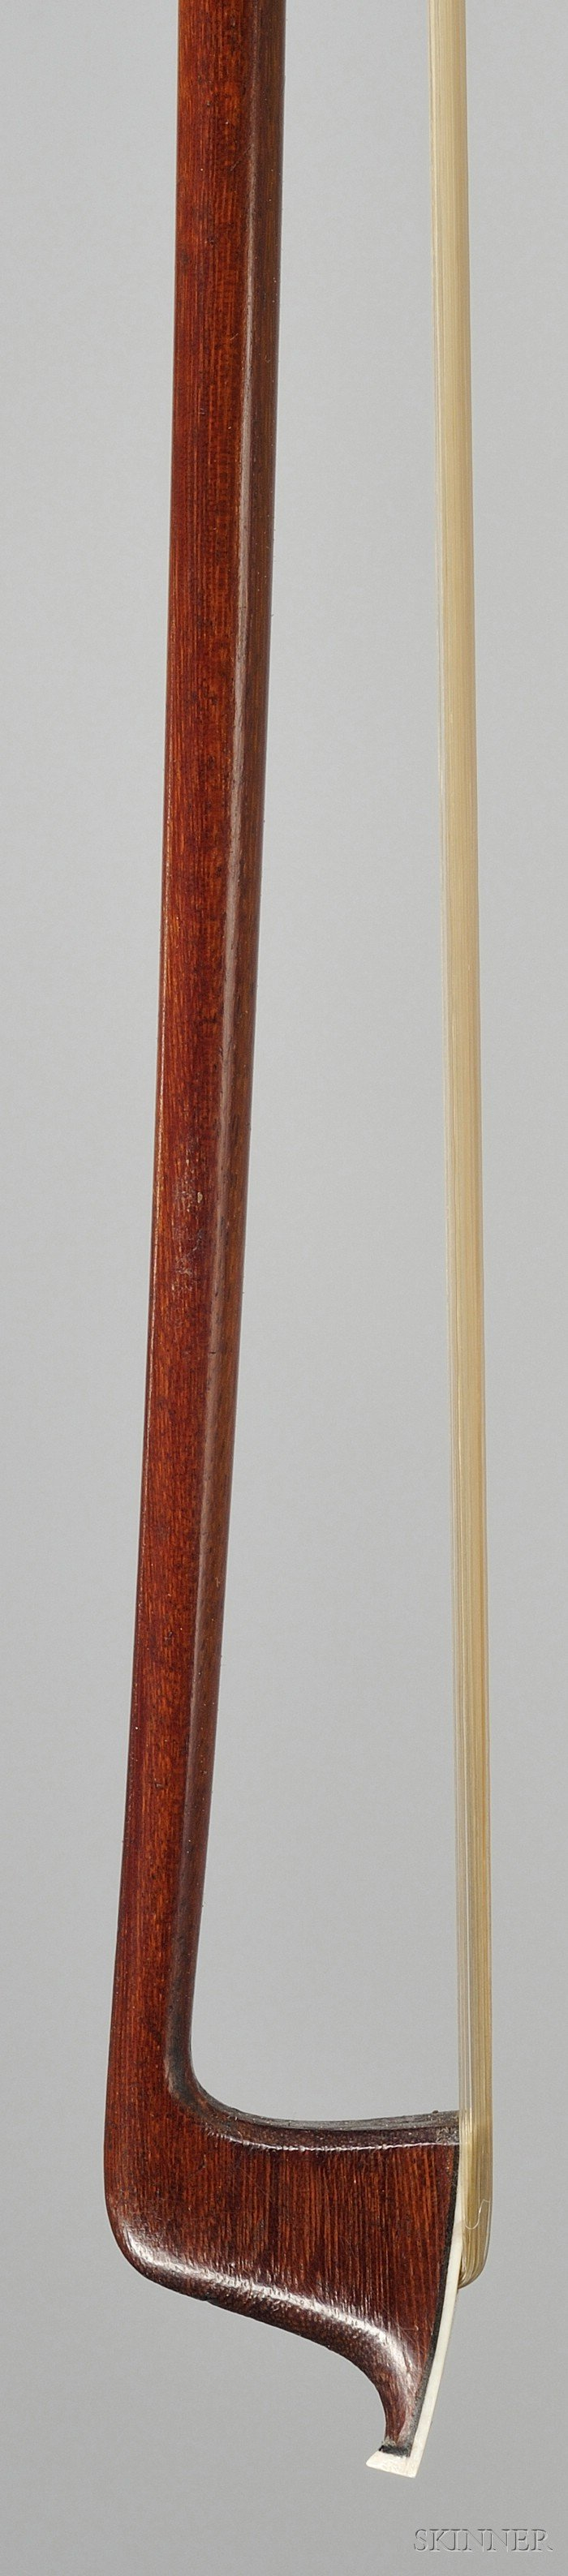 French Silver Mounted Violin Bow, Francois Nicolas Voirin